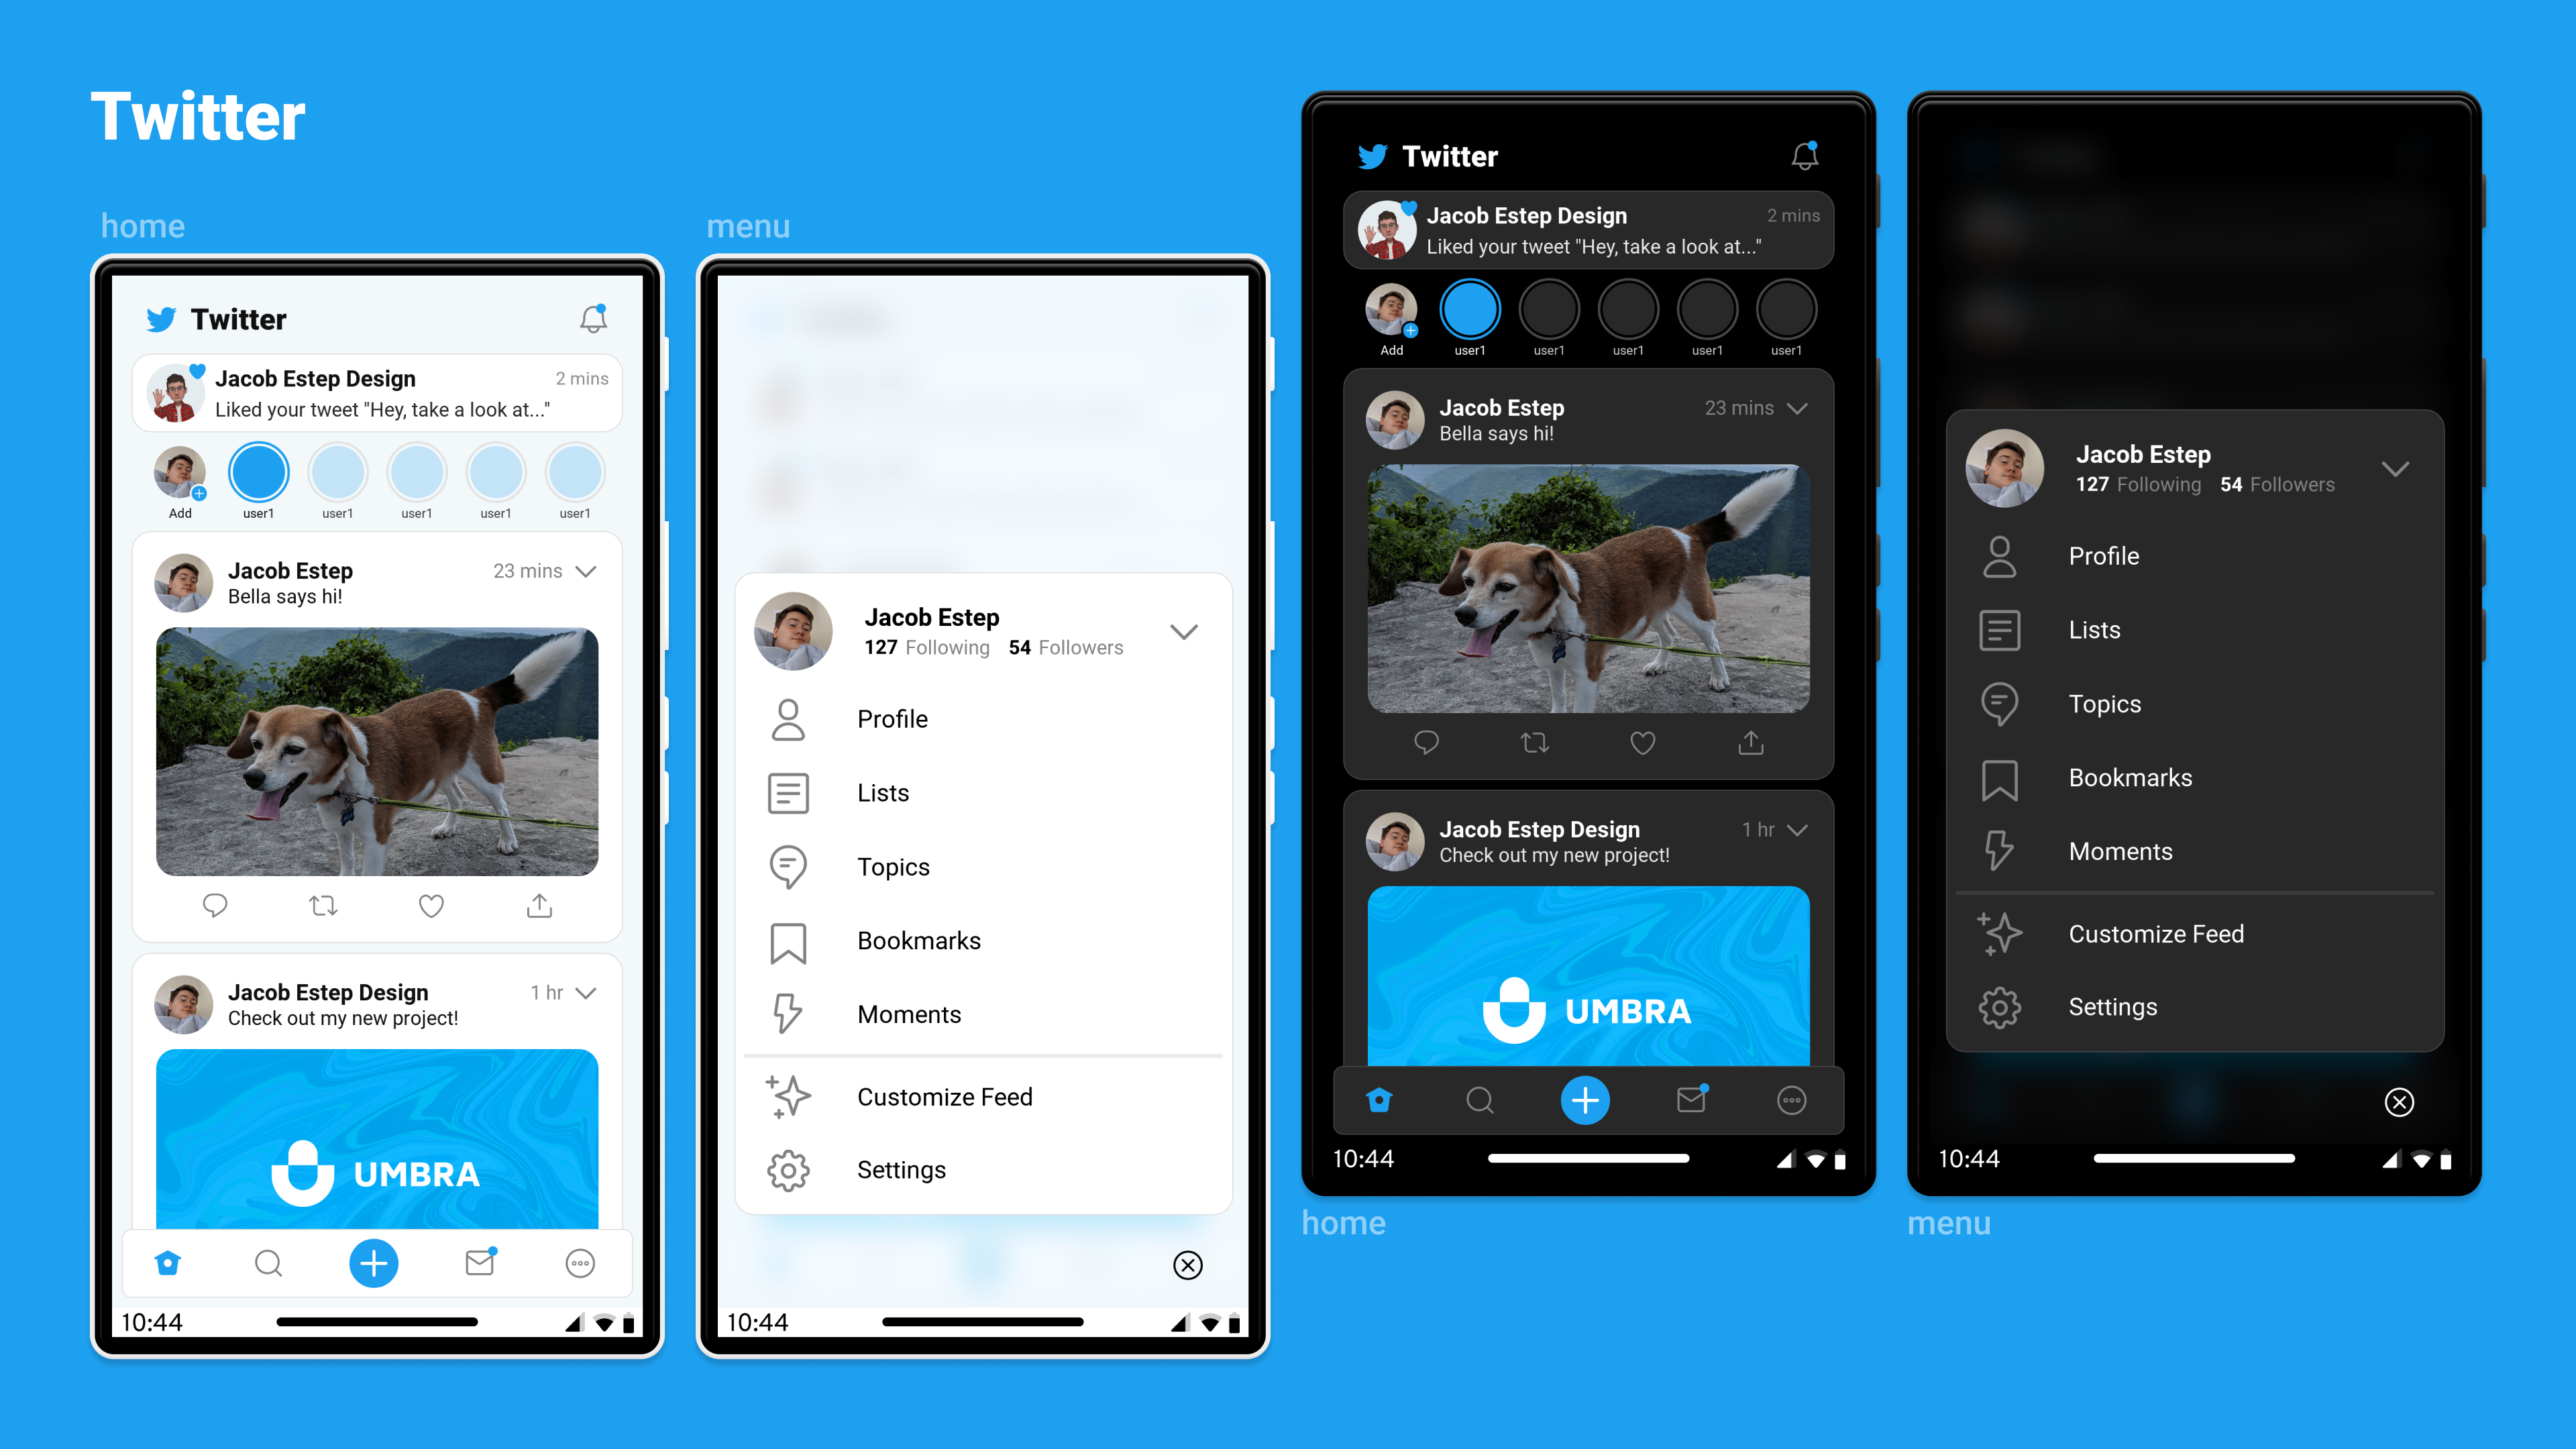 The Twitter home feed and menu, in light and dark modes